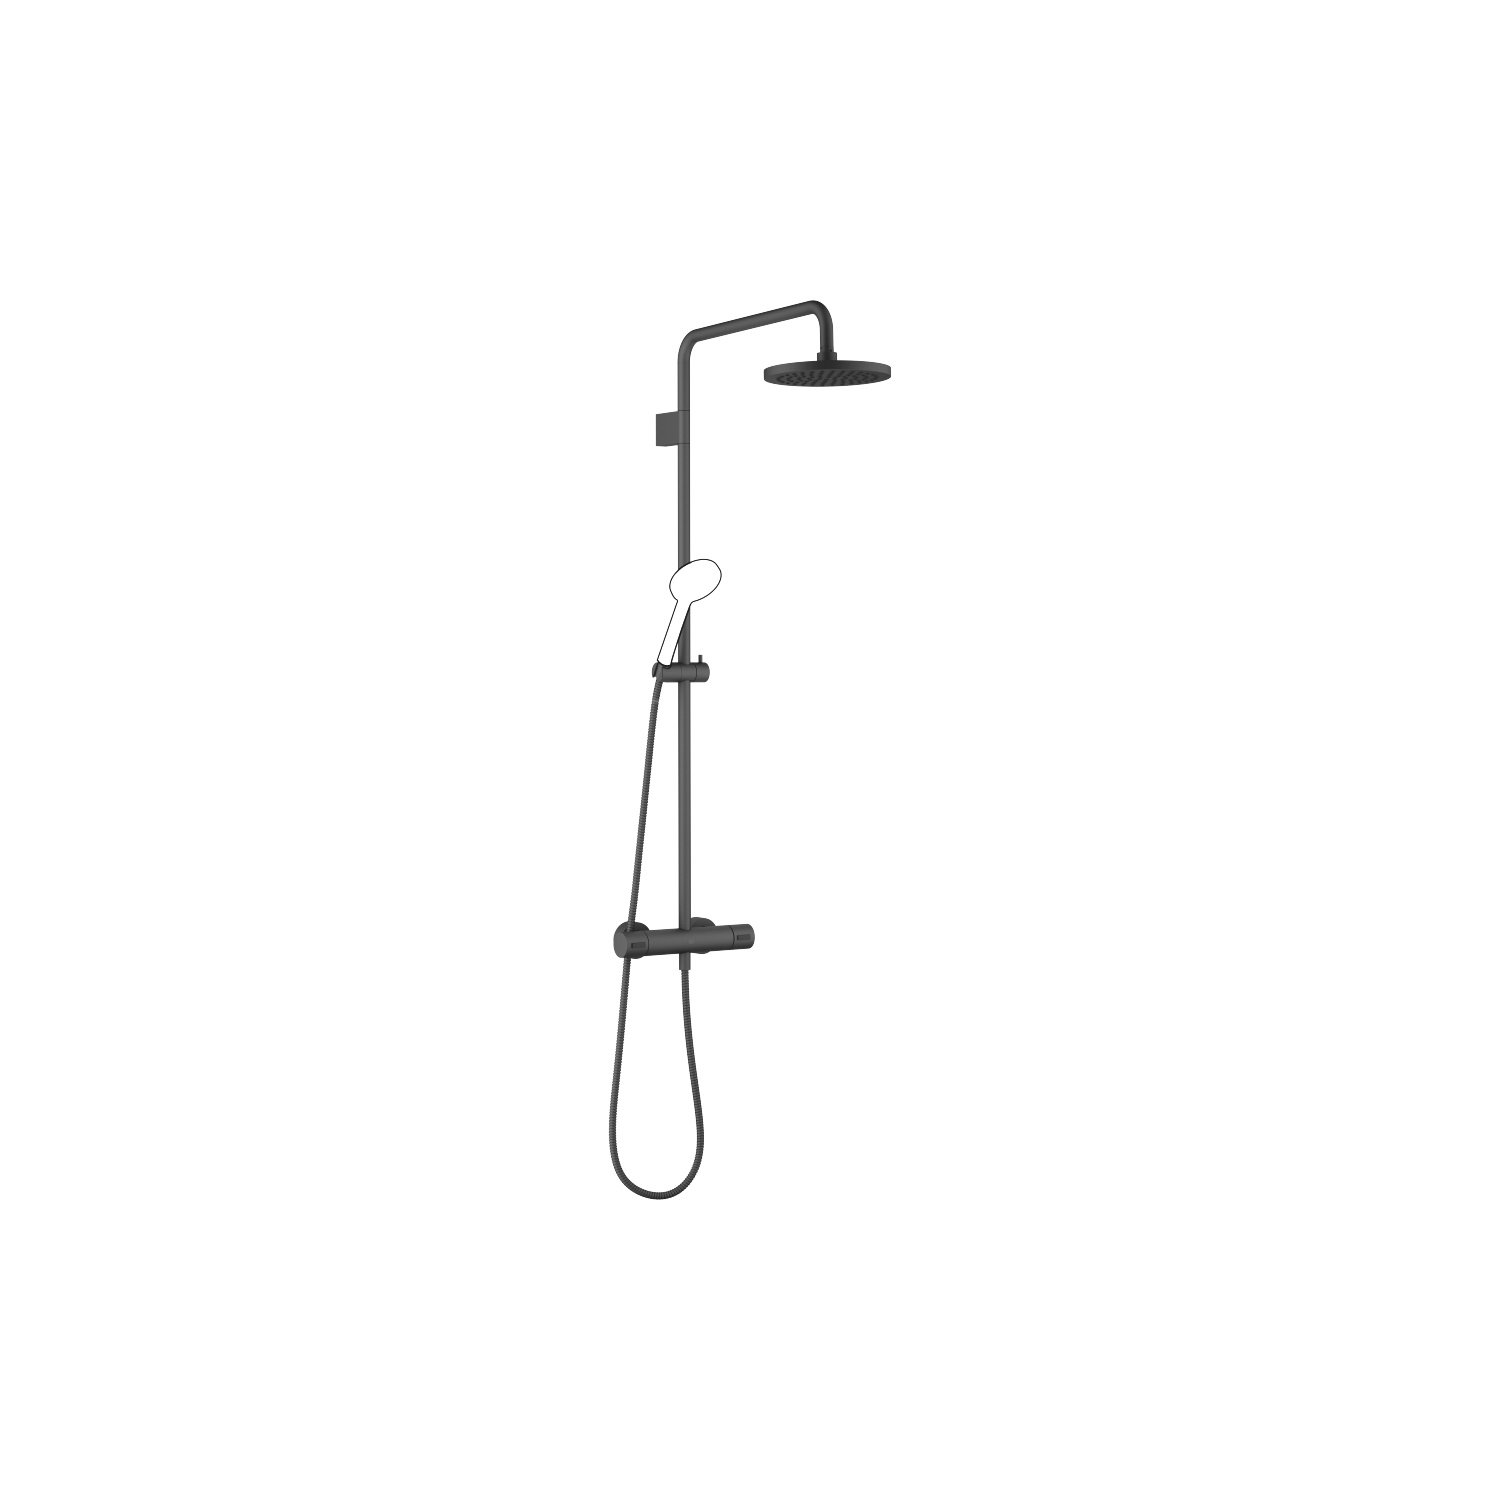 Exposed shower set with shower thermostat without hand shower - black matte